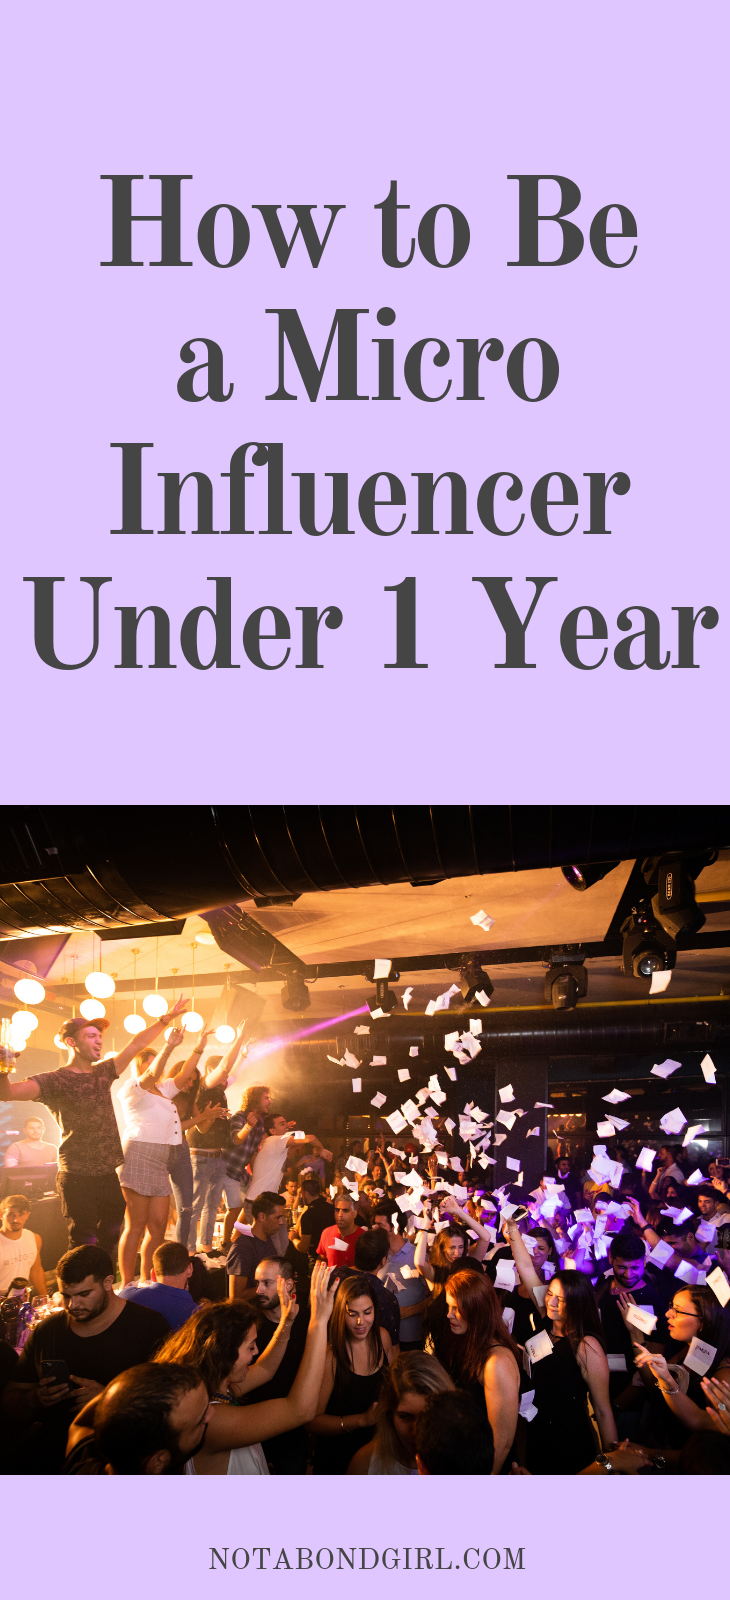 Simple Ways to Become a Micro Influencer in a Year